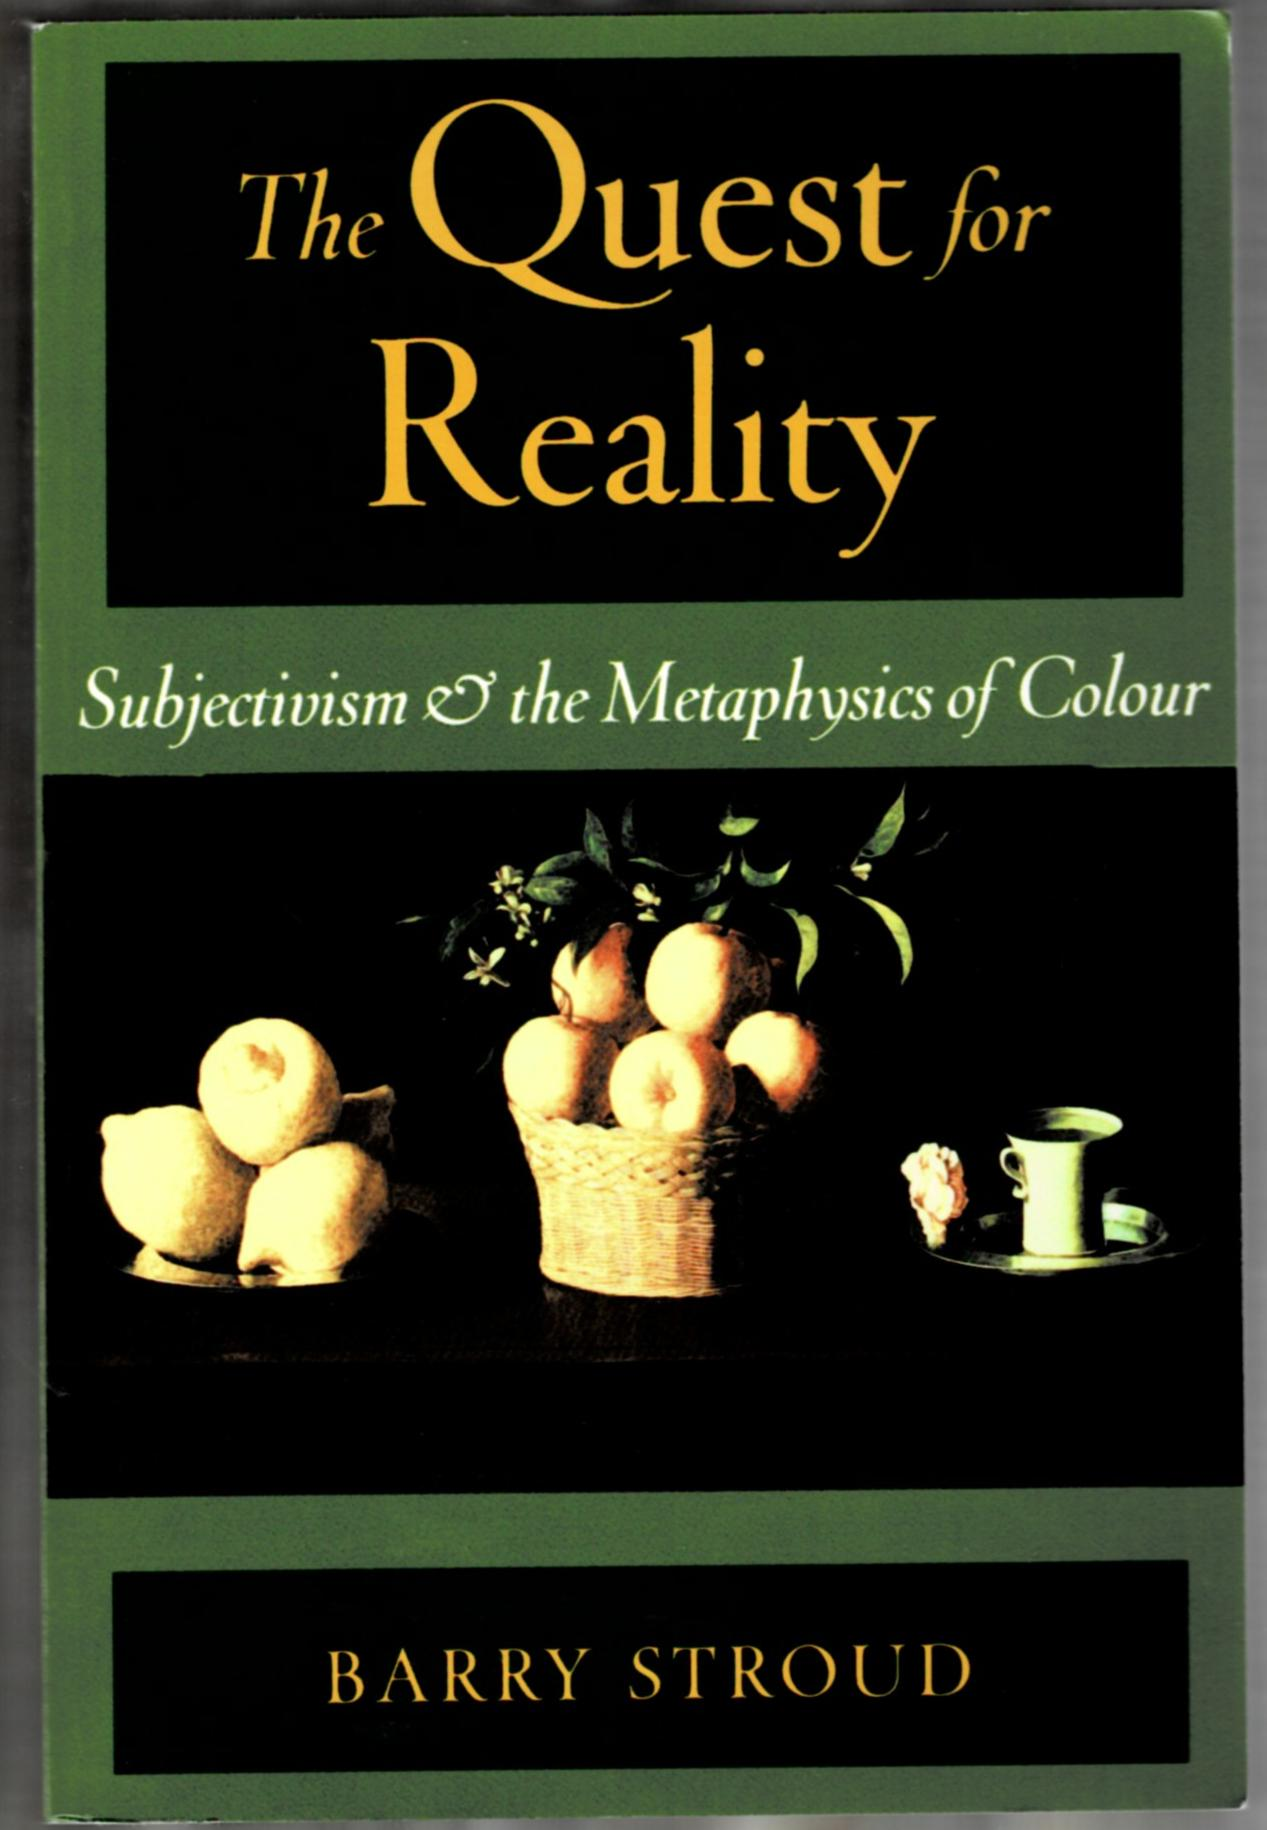 Image for The Quest for Reality: Subjectivism and the Metaphysics of Colour